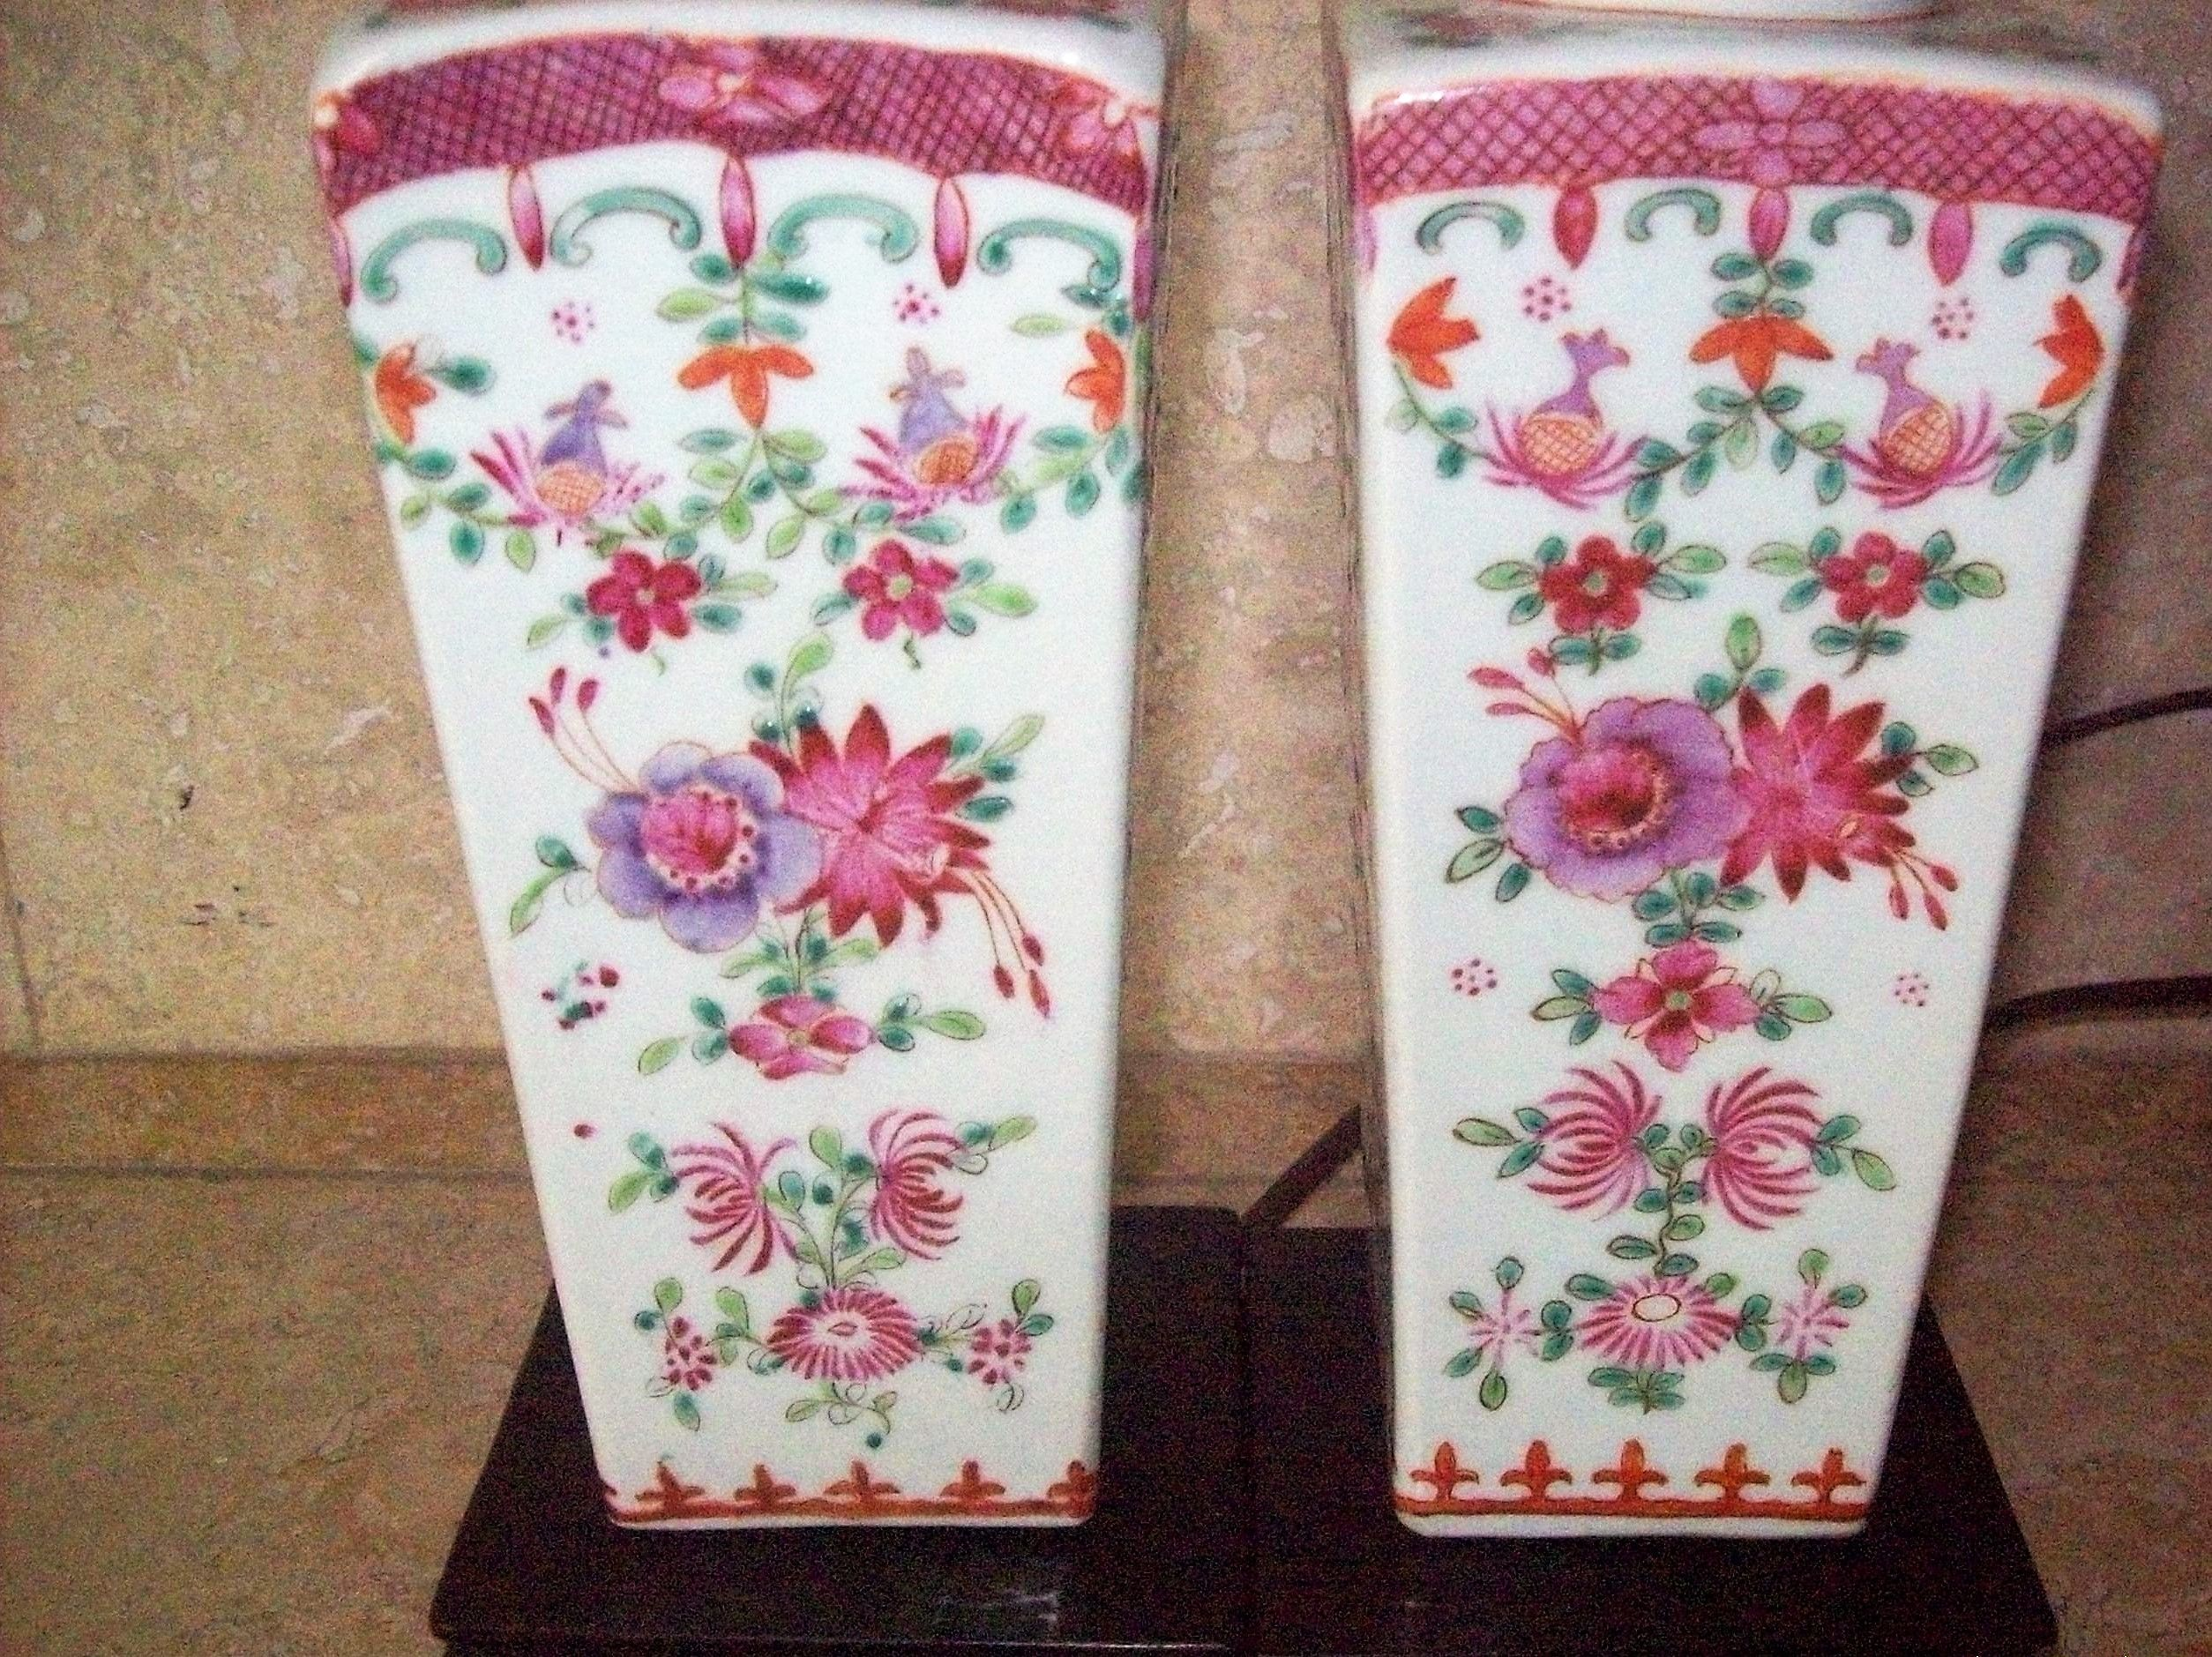 Pair antique chinese export porcelain famille rose square vase pair antique chinese export porcelain famille rose square vase lamps wwood base reviewsmspy